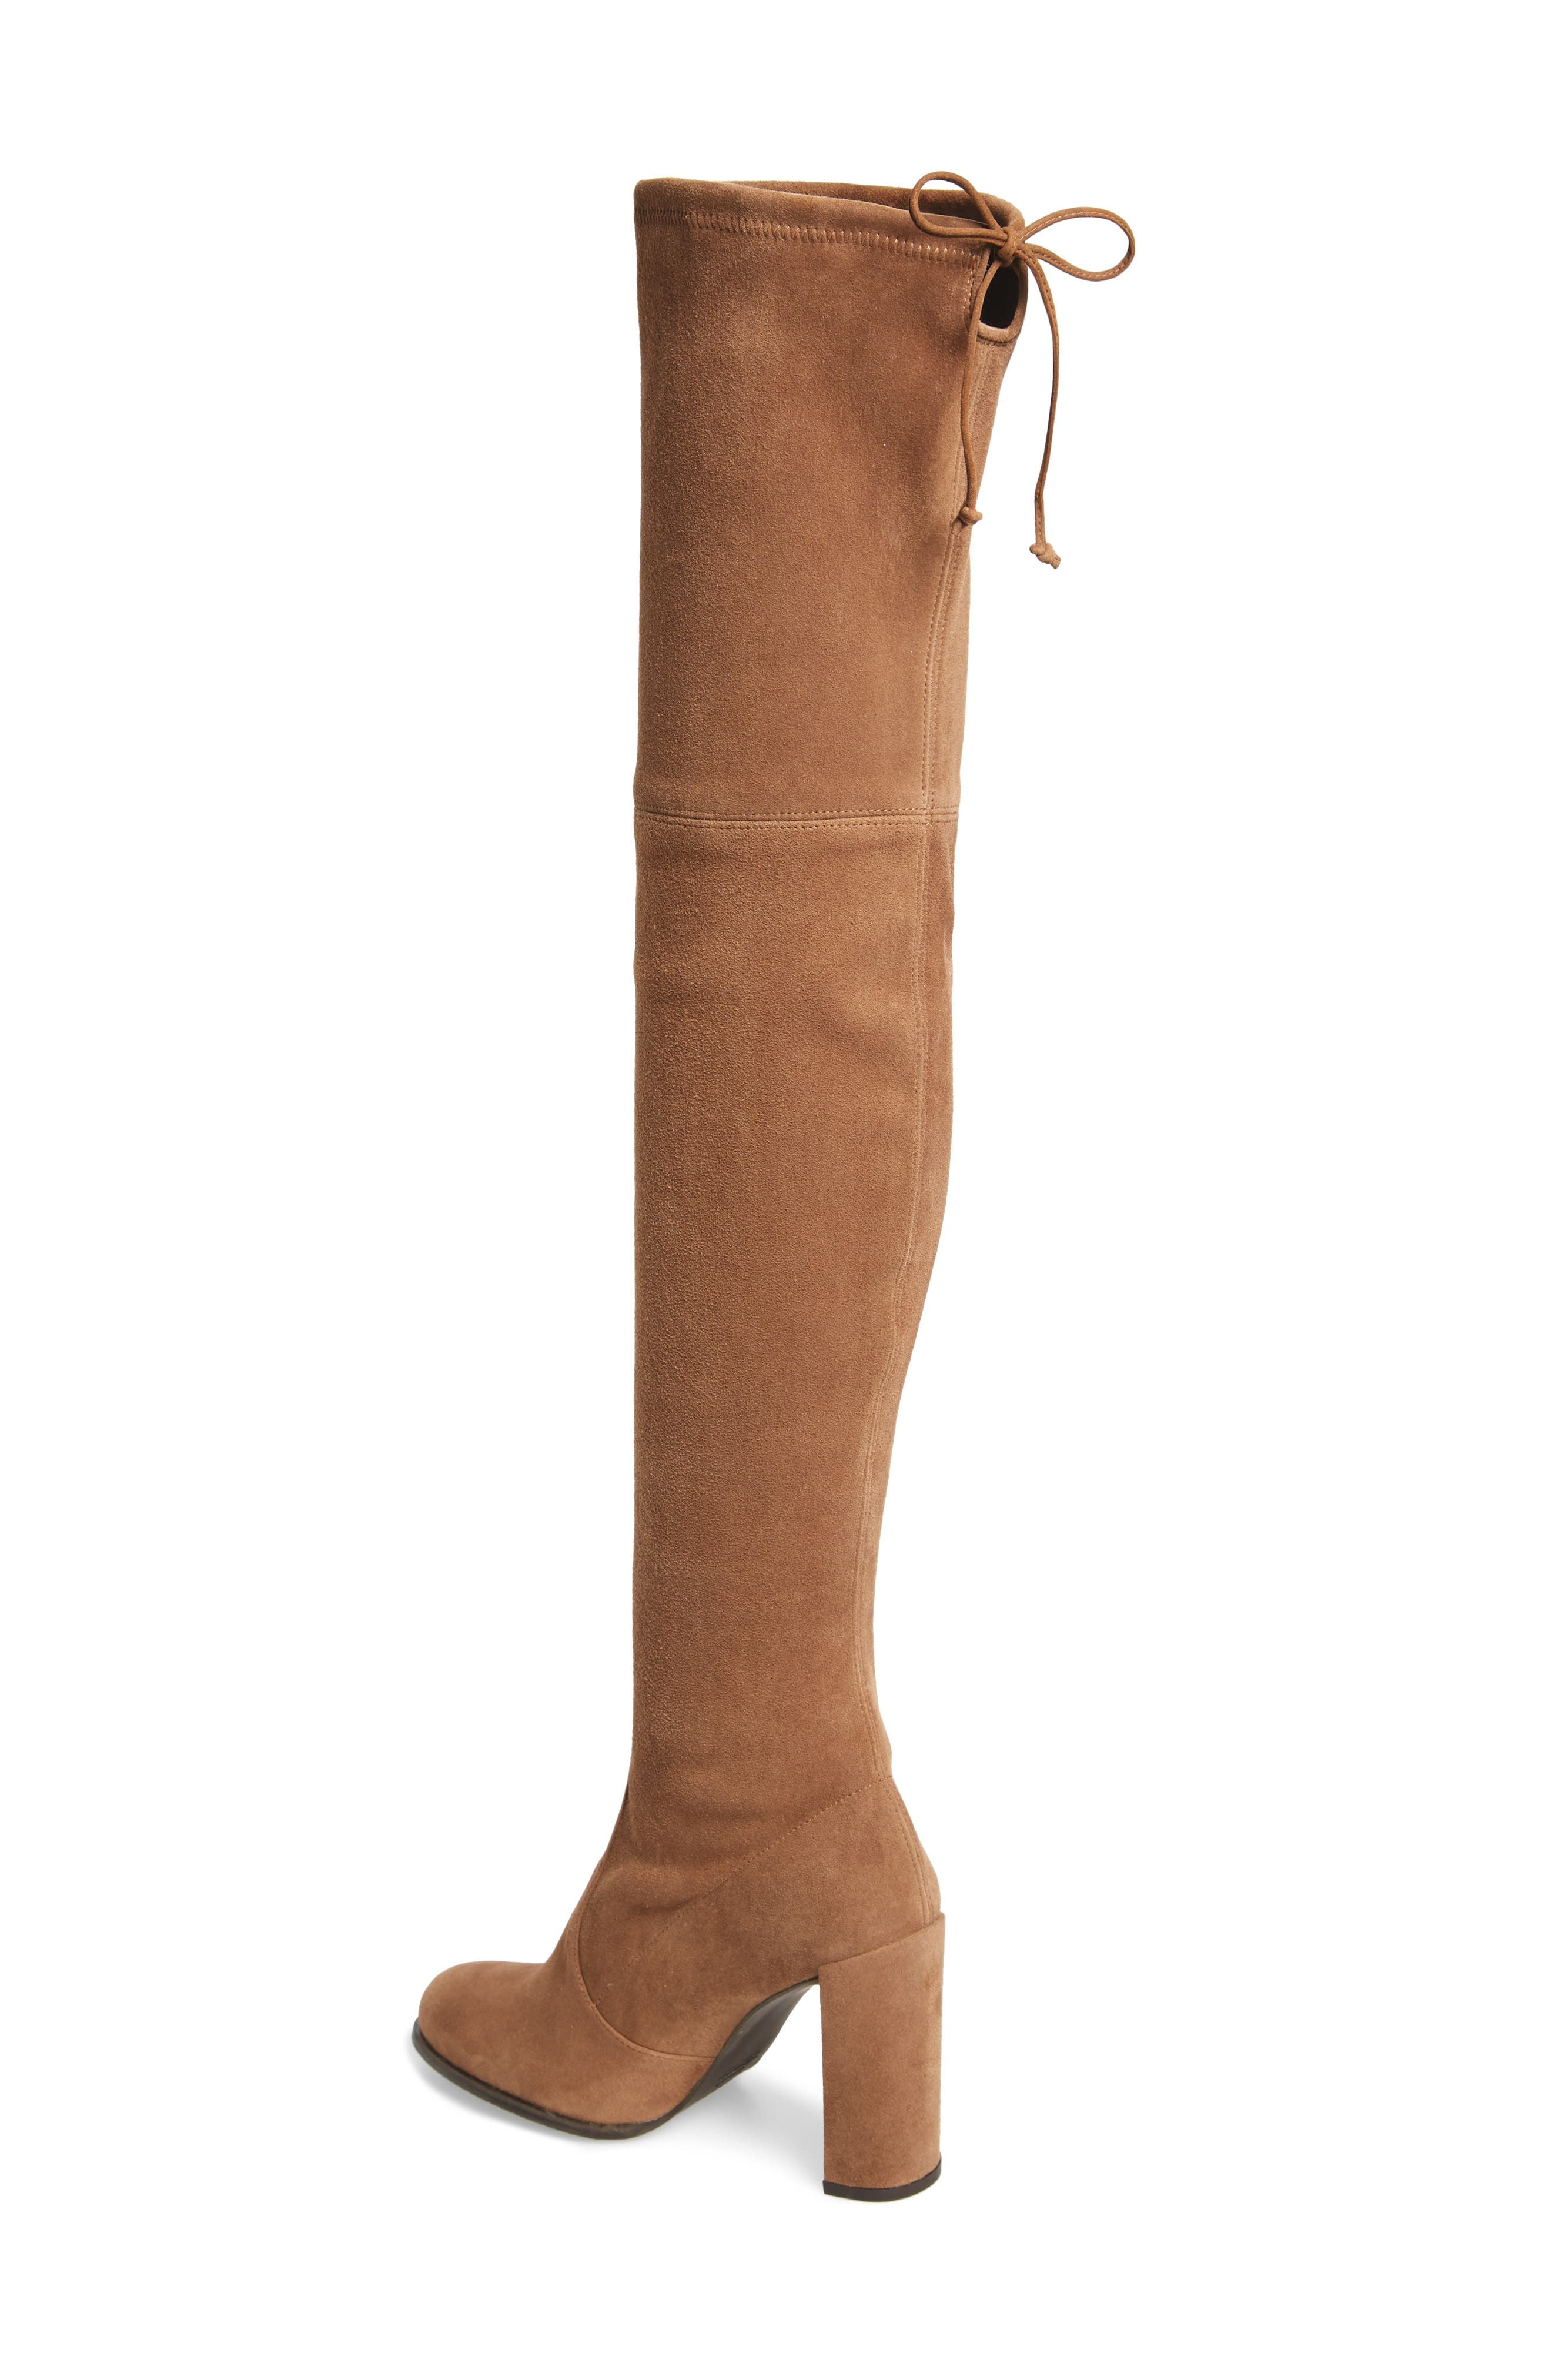 Hiline Over the Knee Boot,                             Alternate thumbnail 2, color,                             Nutmeg Suede